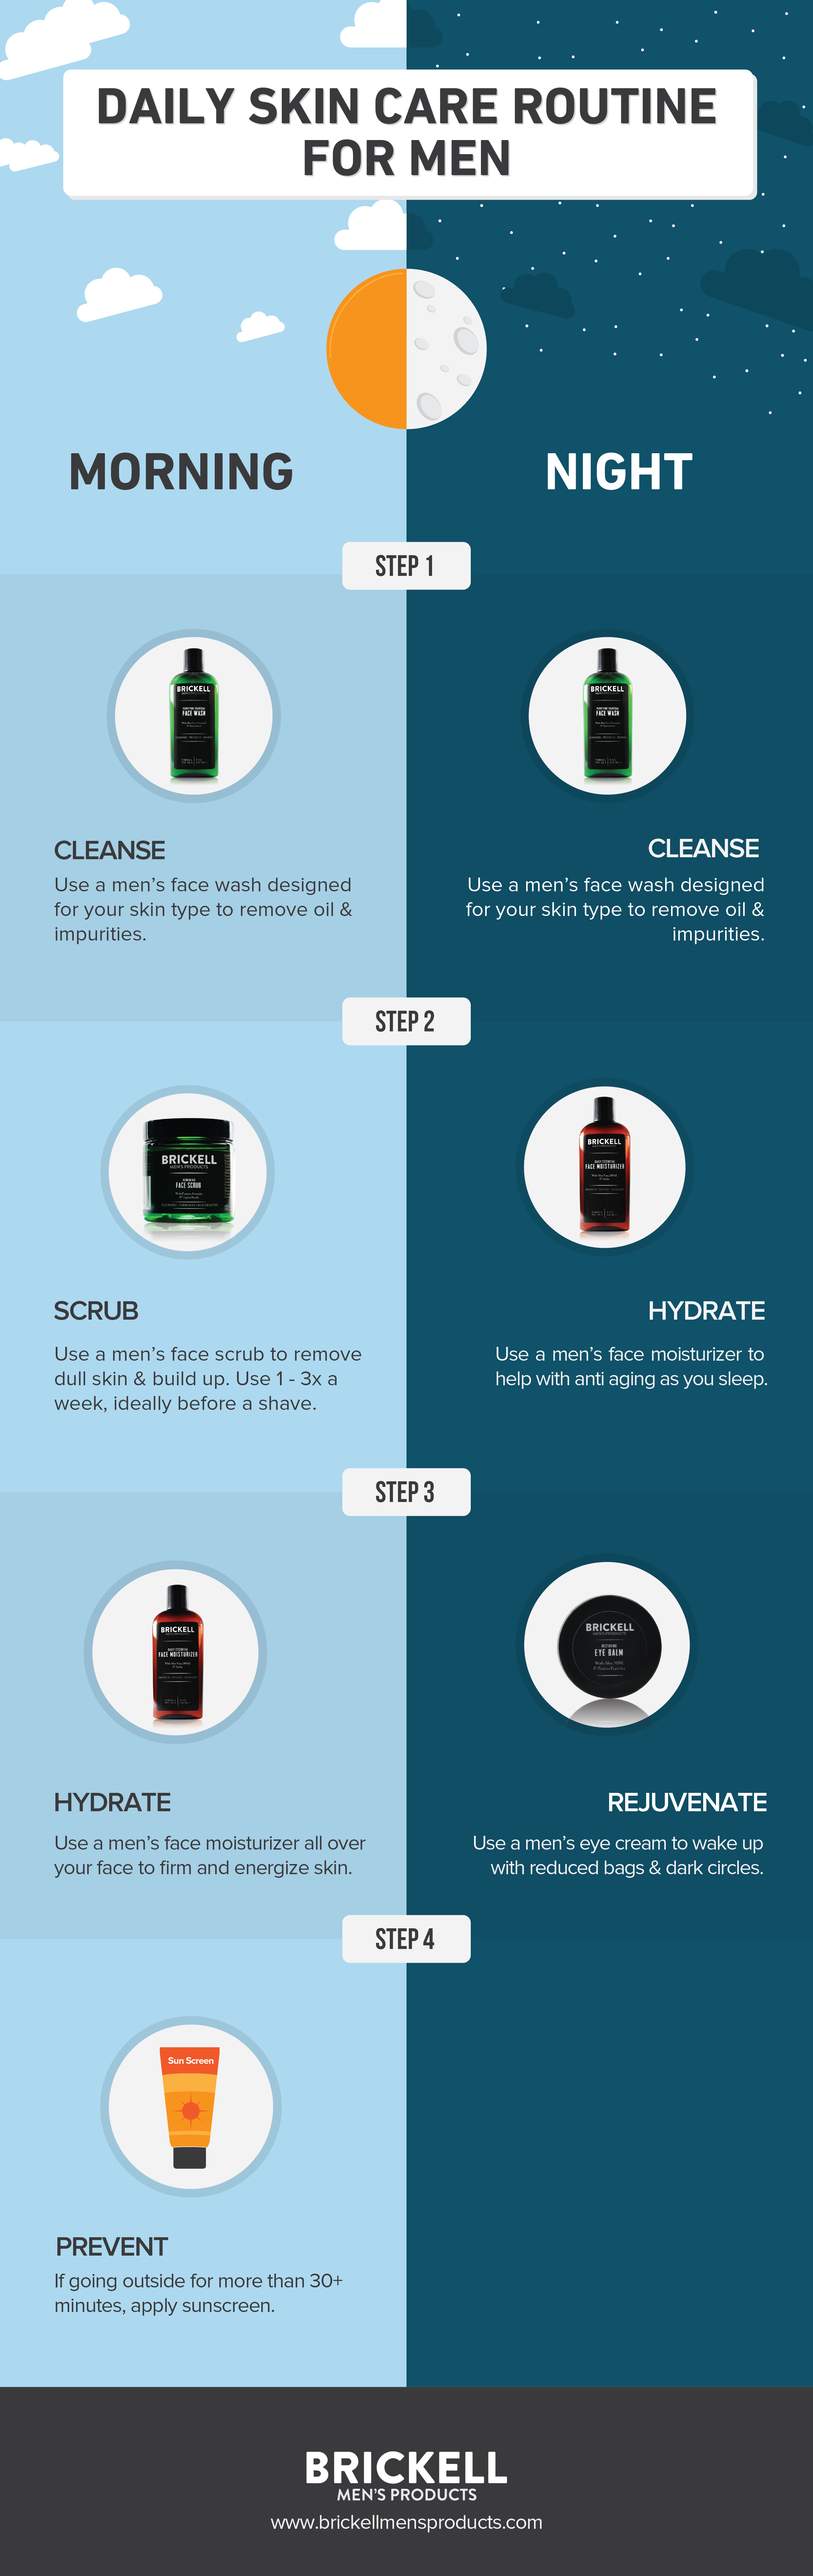 Men's daily skin care routine infographic